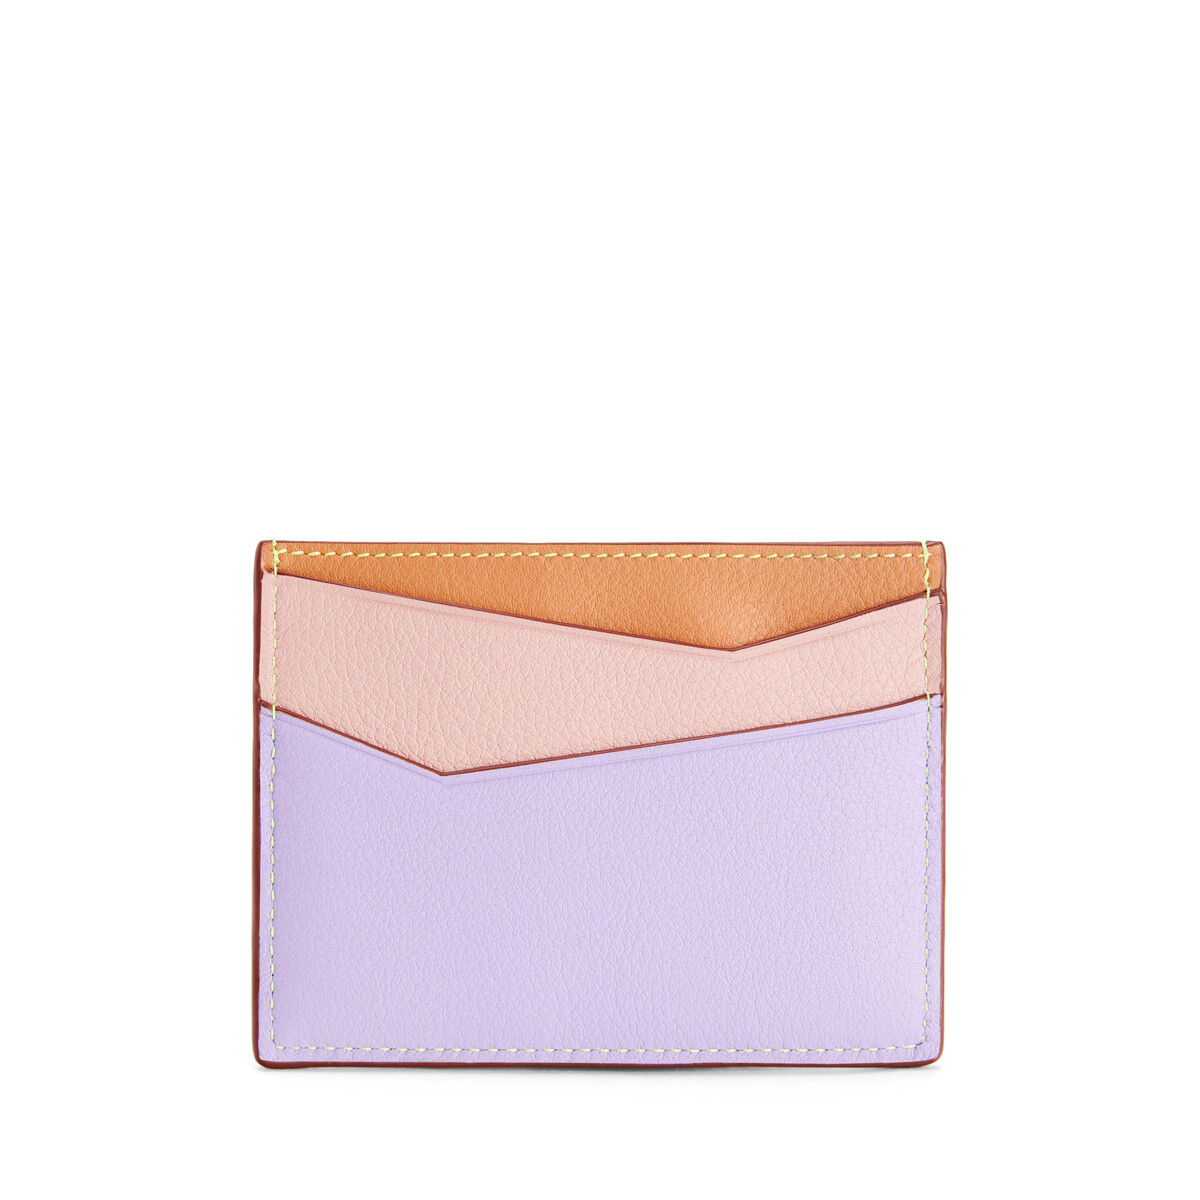 LOEWE Puzzle Plain Cardholder In Classic Calfskin Mauve/Soft Apricot front